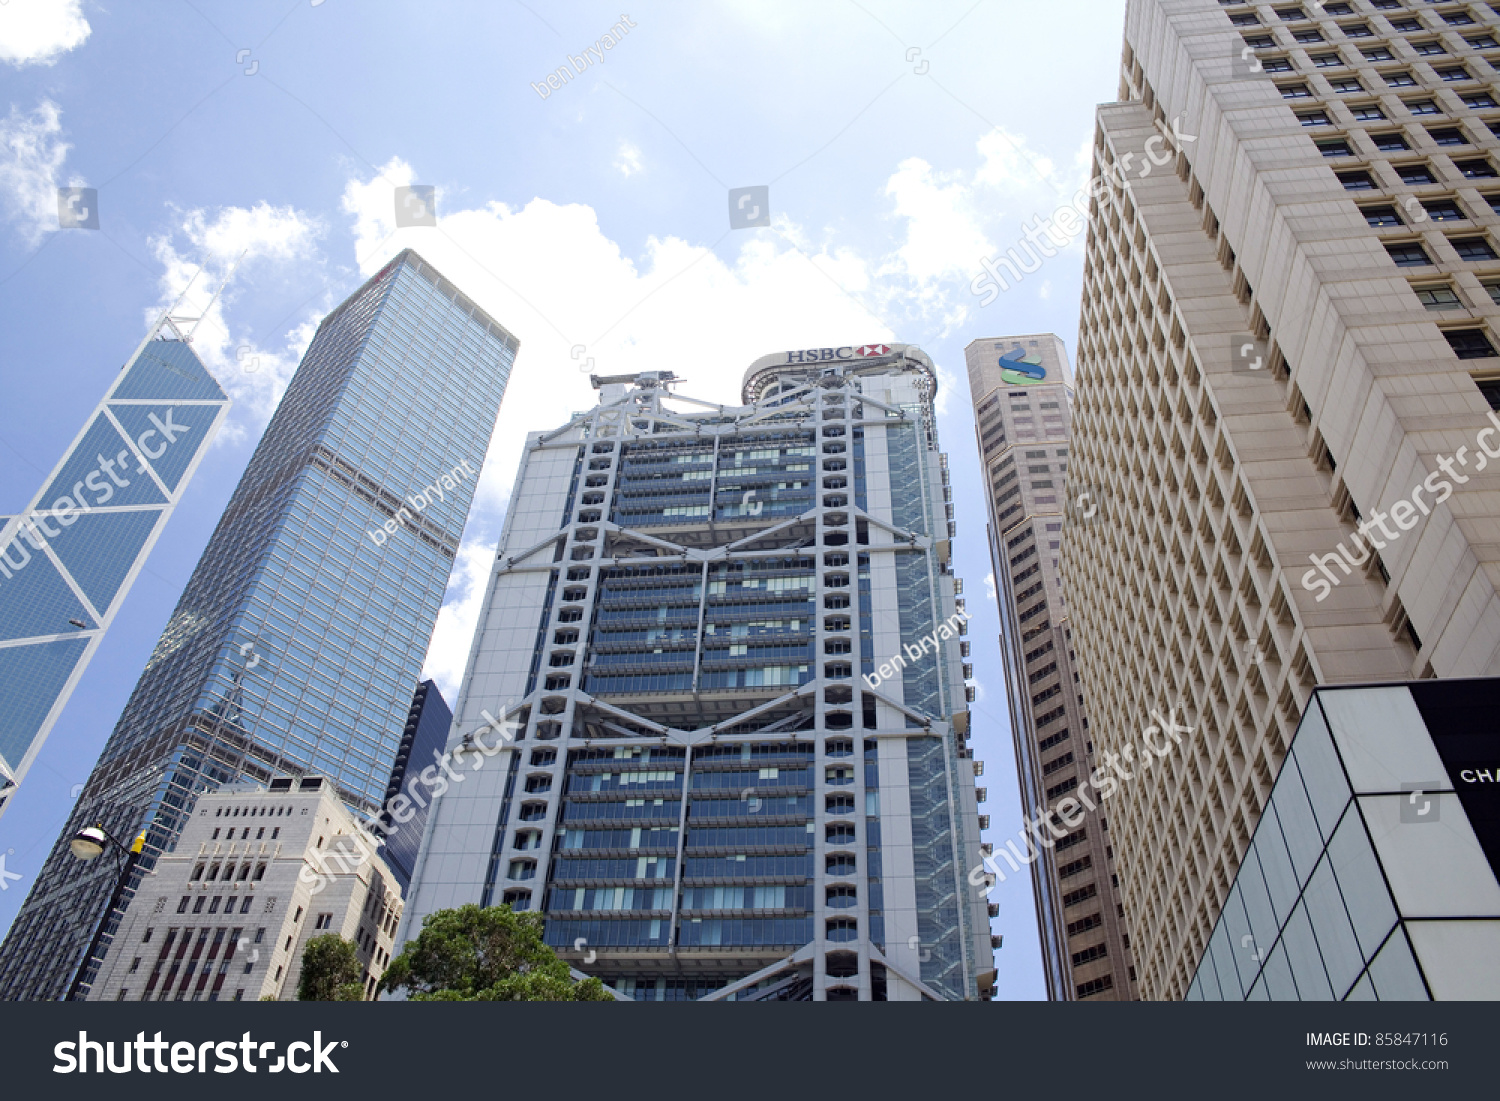 Hong kong july 5 the hsbc main building headquarters of the hsbc limited in central hong - Hsbc hong kong office address ...